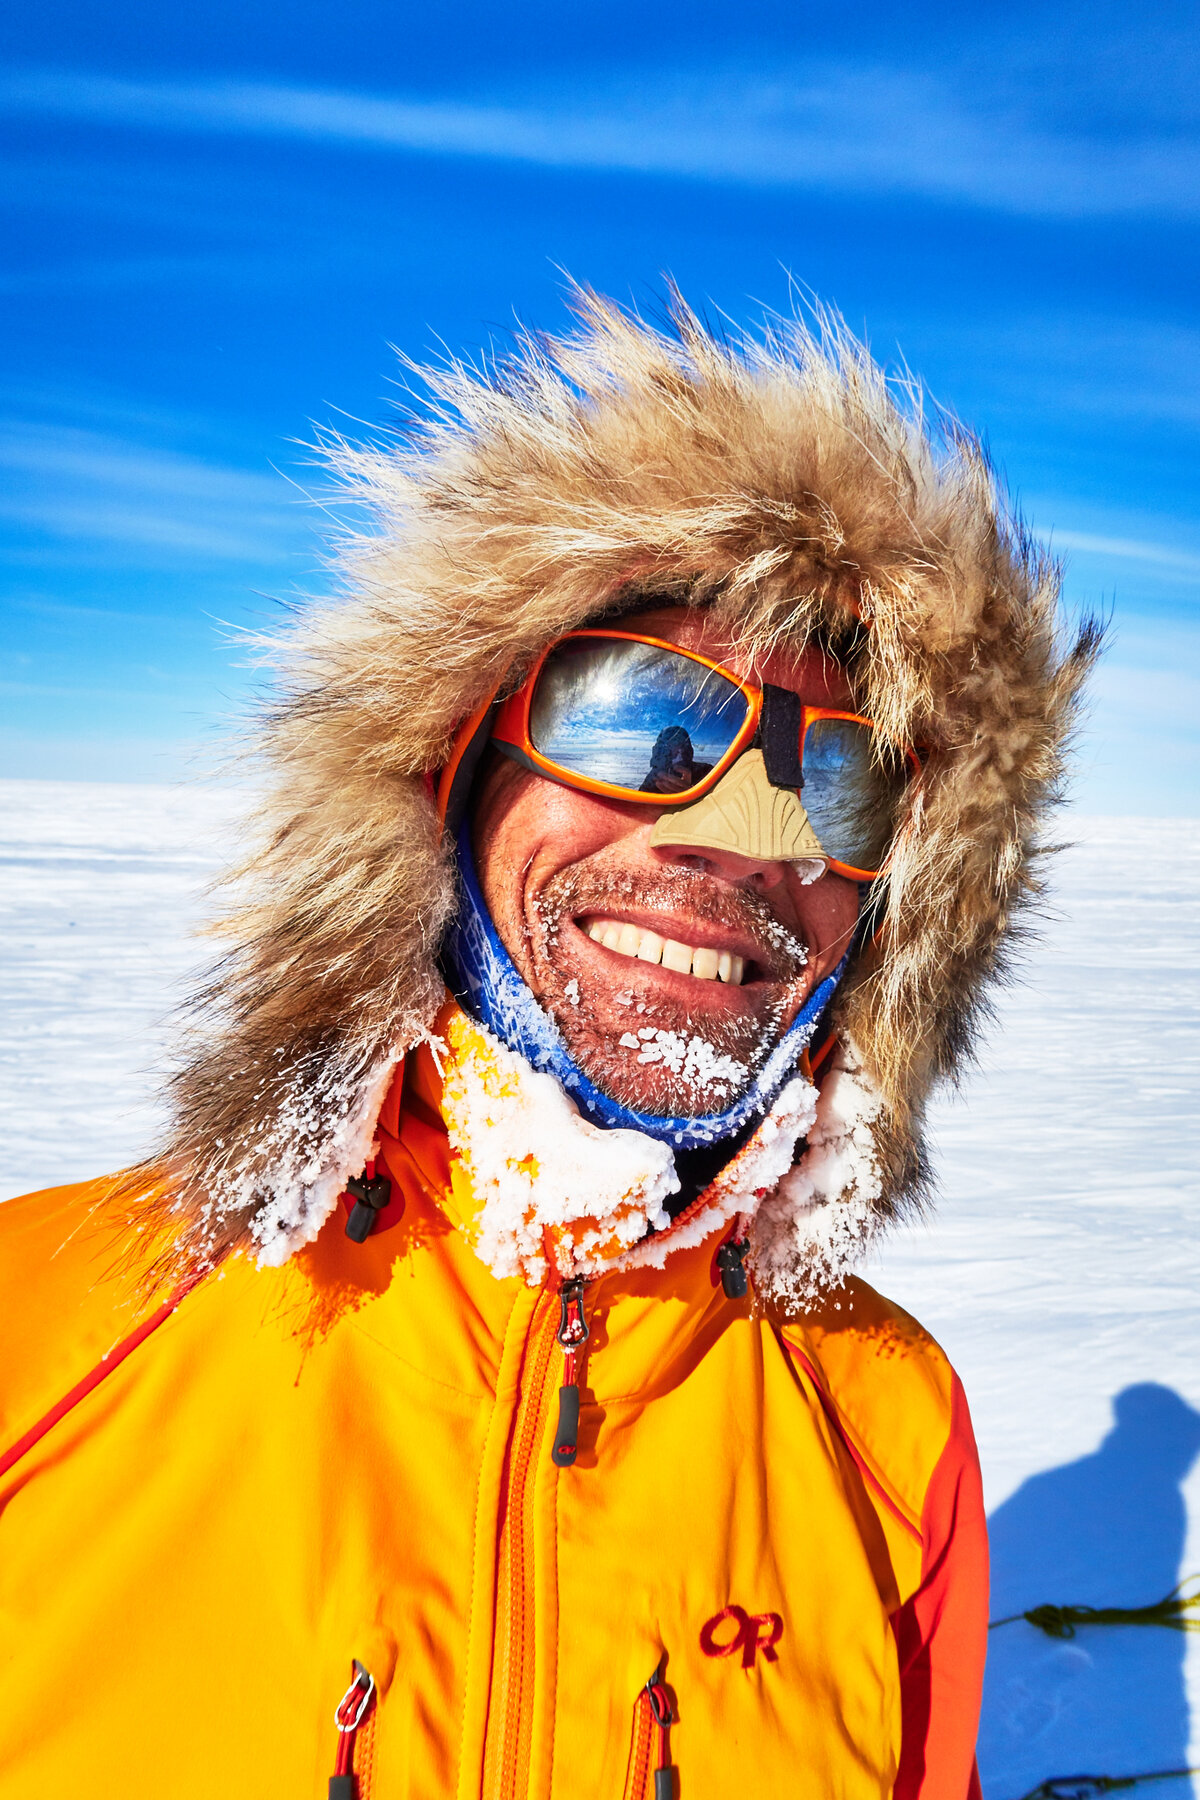 Skier smiles wearing fur ruff, sunglasses, and nose shield